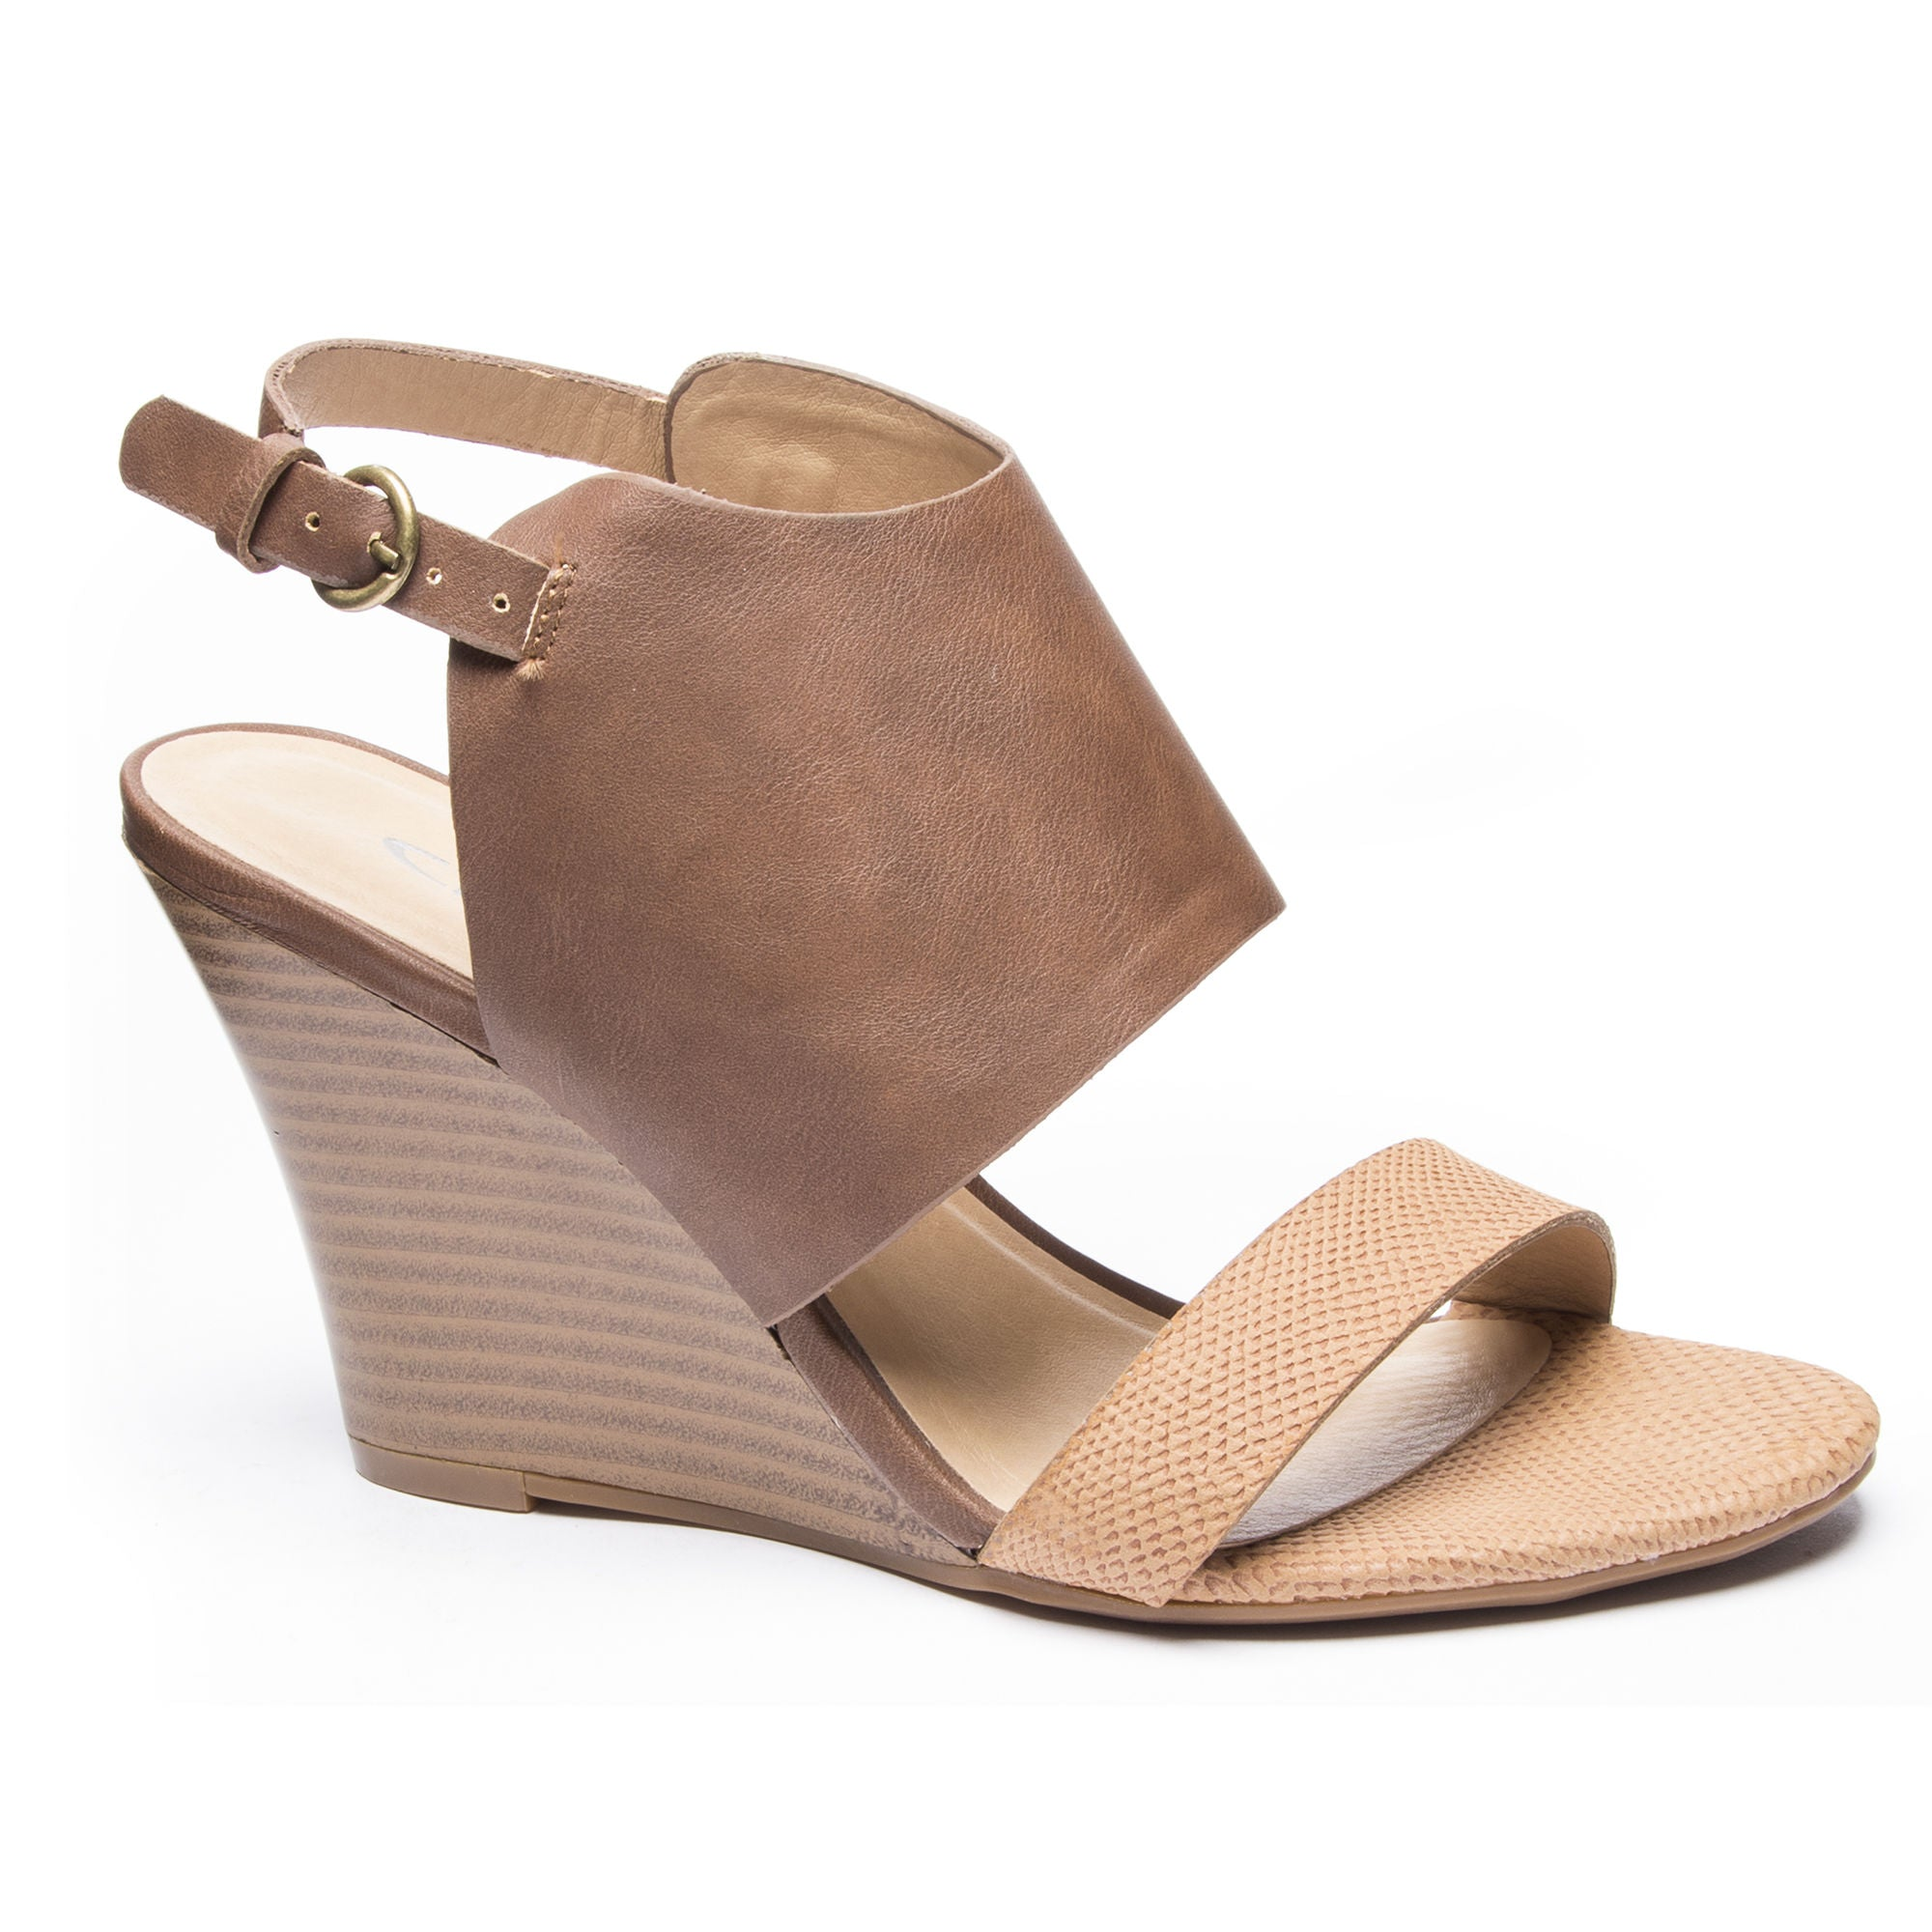 4ff721e7b54 Chinese Laundry Karina Wedge Sandals - Tan Biscuit - Eleven Oaks Boutique